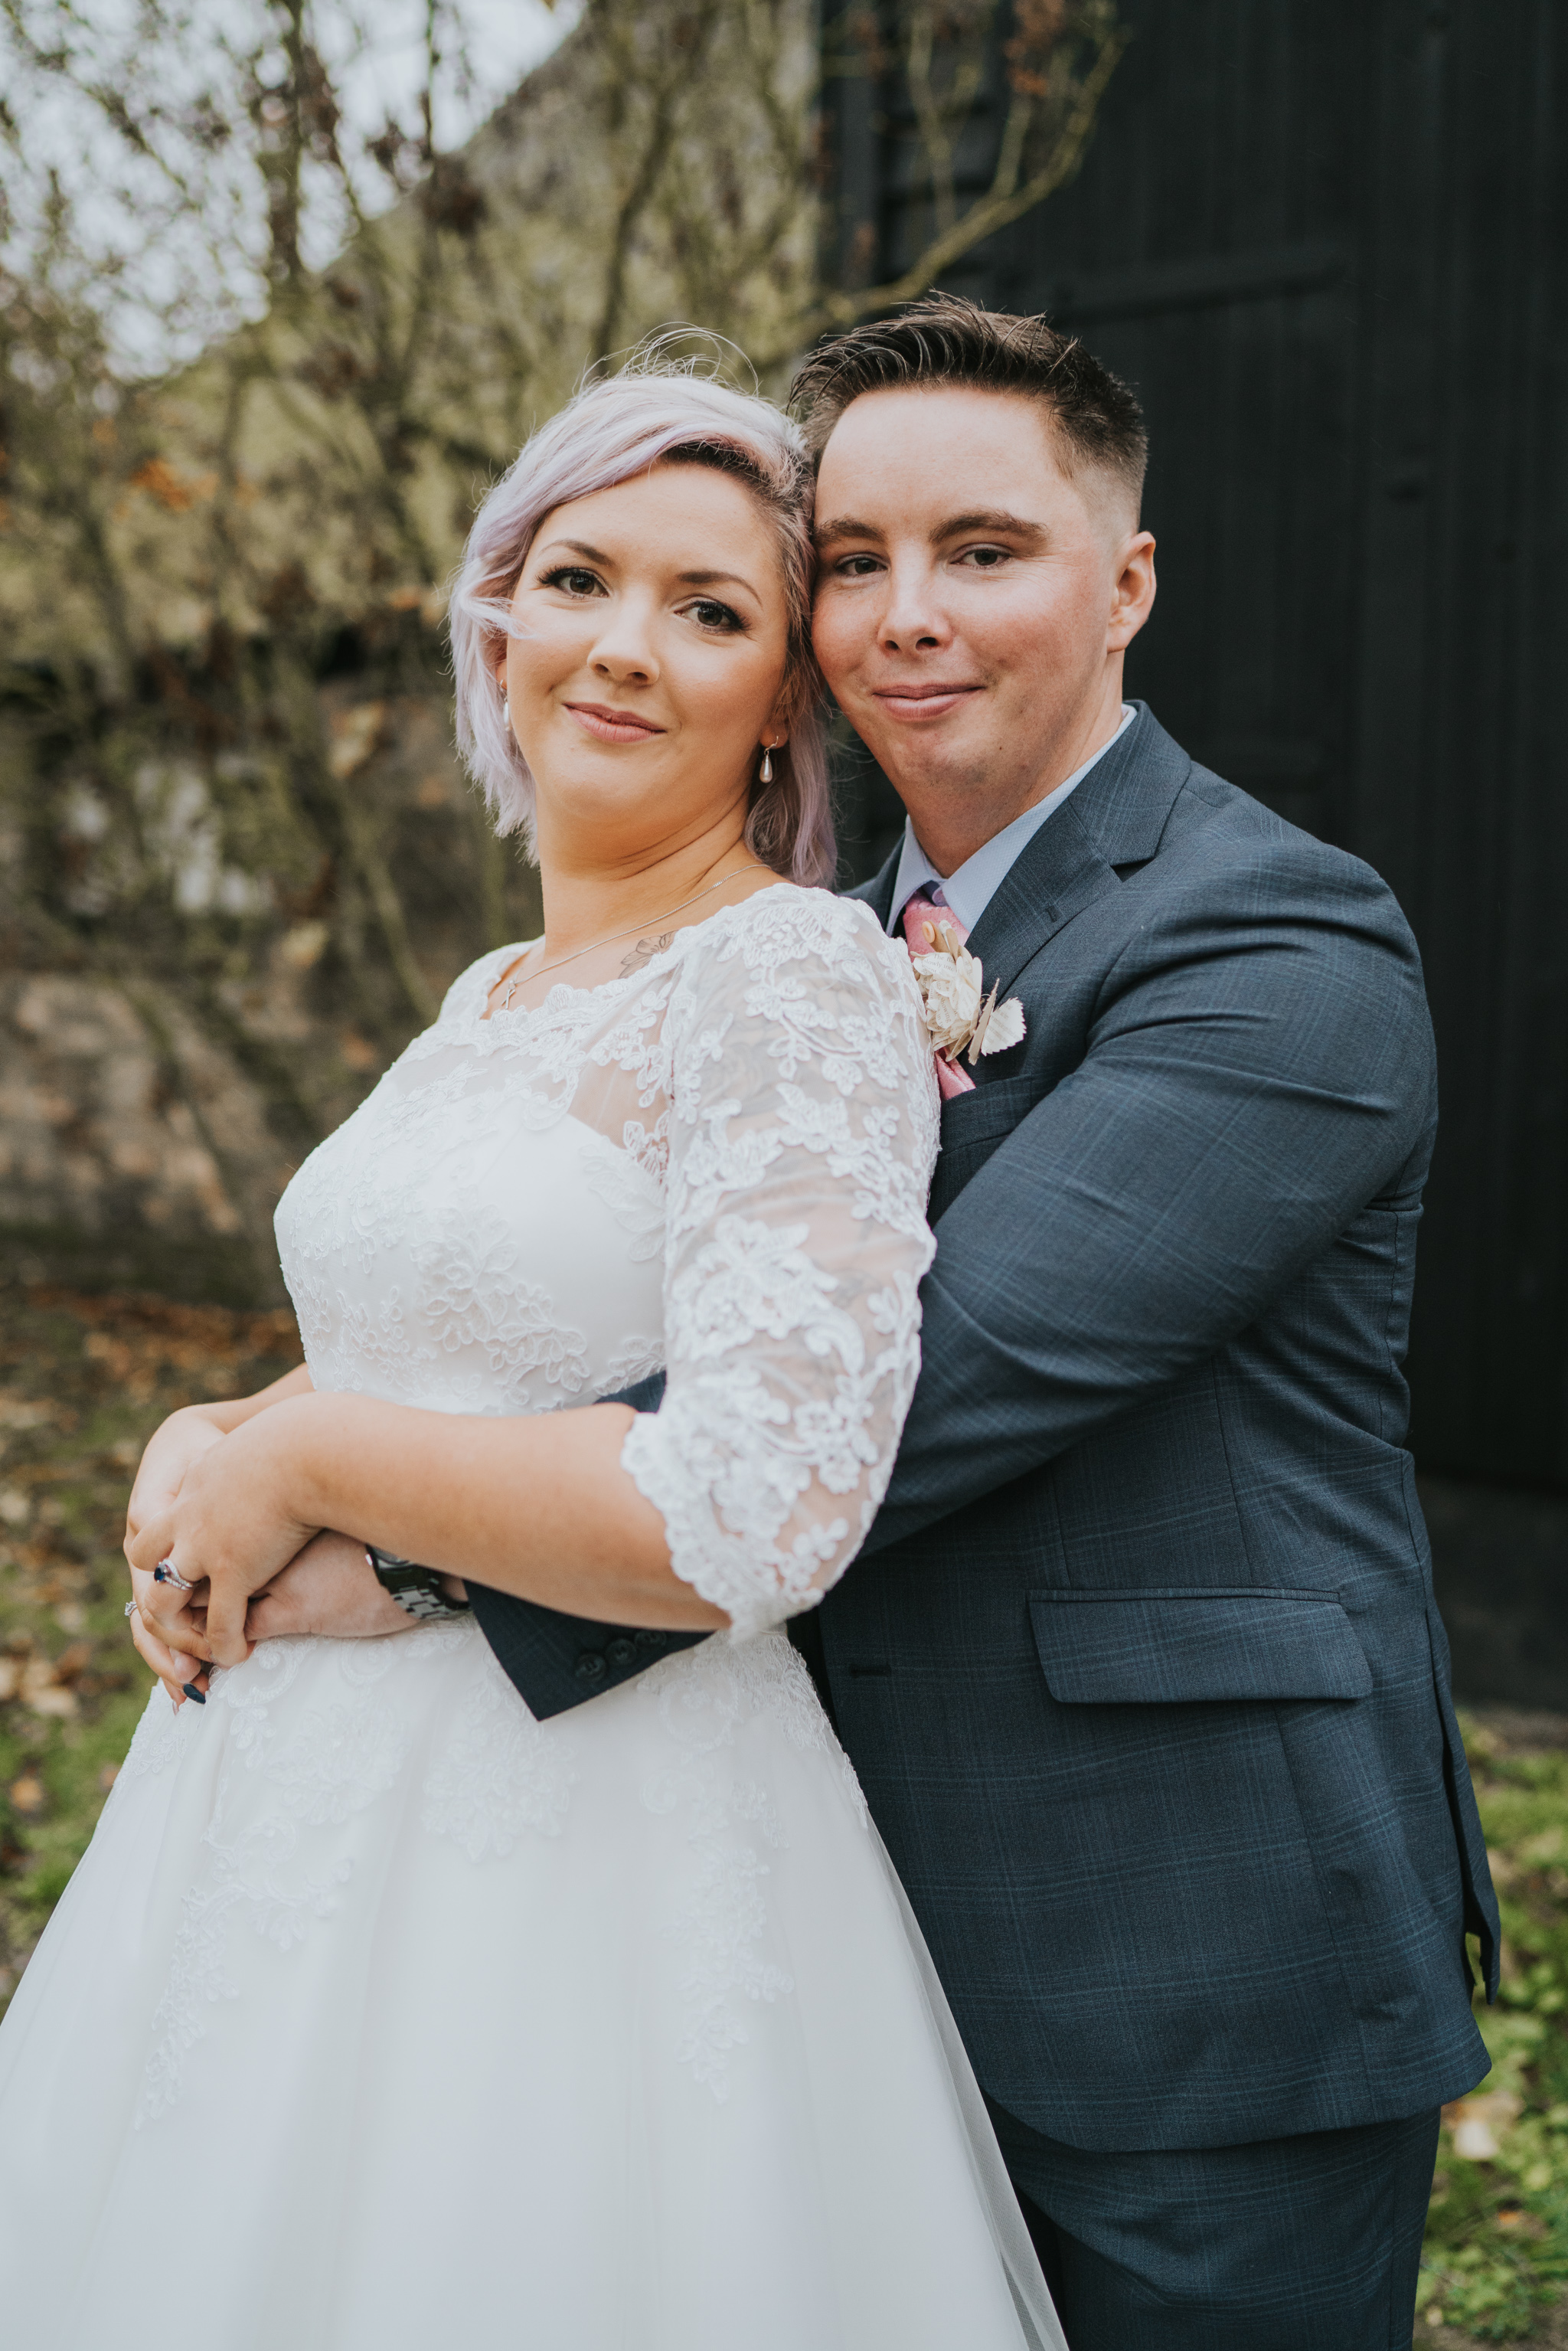 rhia-james-rustic-crabbs-barn-vintage-50s-retro-wedding-grace-elizabeth-colchester-essex-alternative-relaxed-wedding-family-photography-devon-suffolk-norfolk-essex (89 of 138).jpg